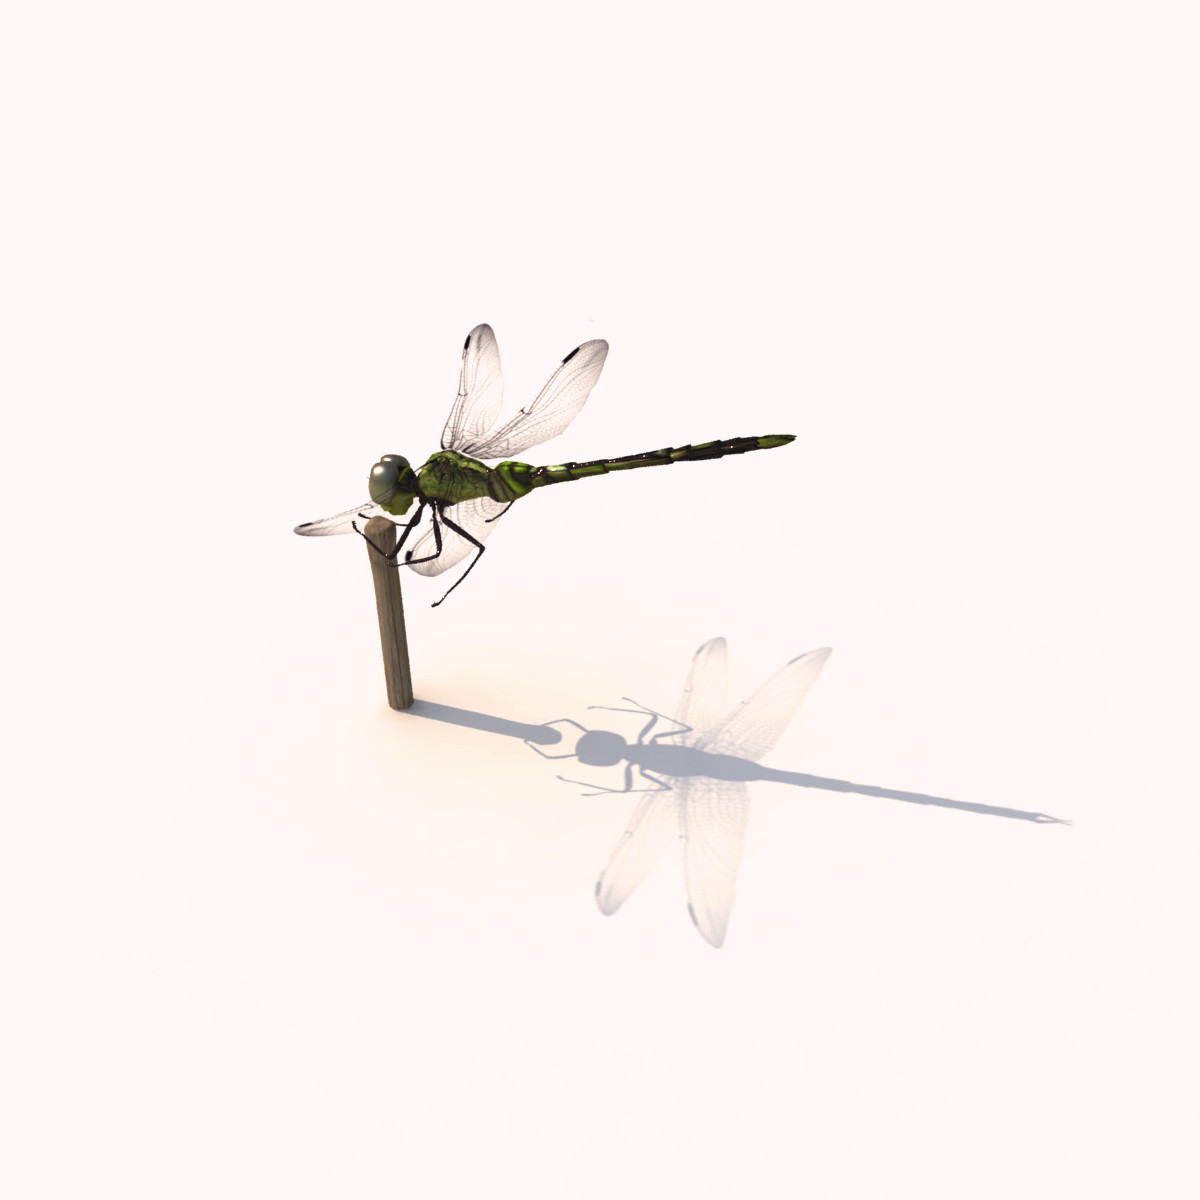 dragonfly animation insect